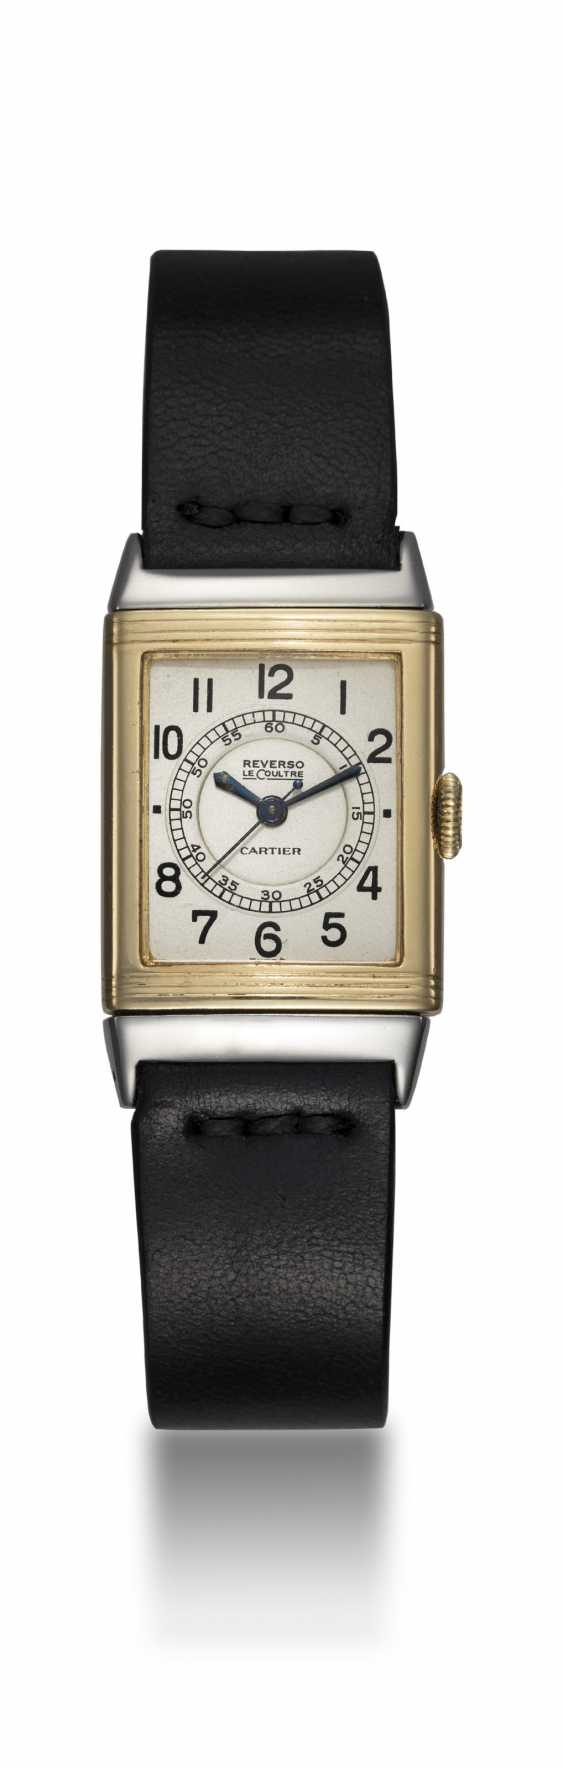 LECOULTRE, A TWO TONE REVERSO RETAILED BY CARTIER - photo 3